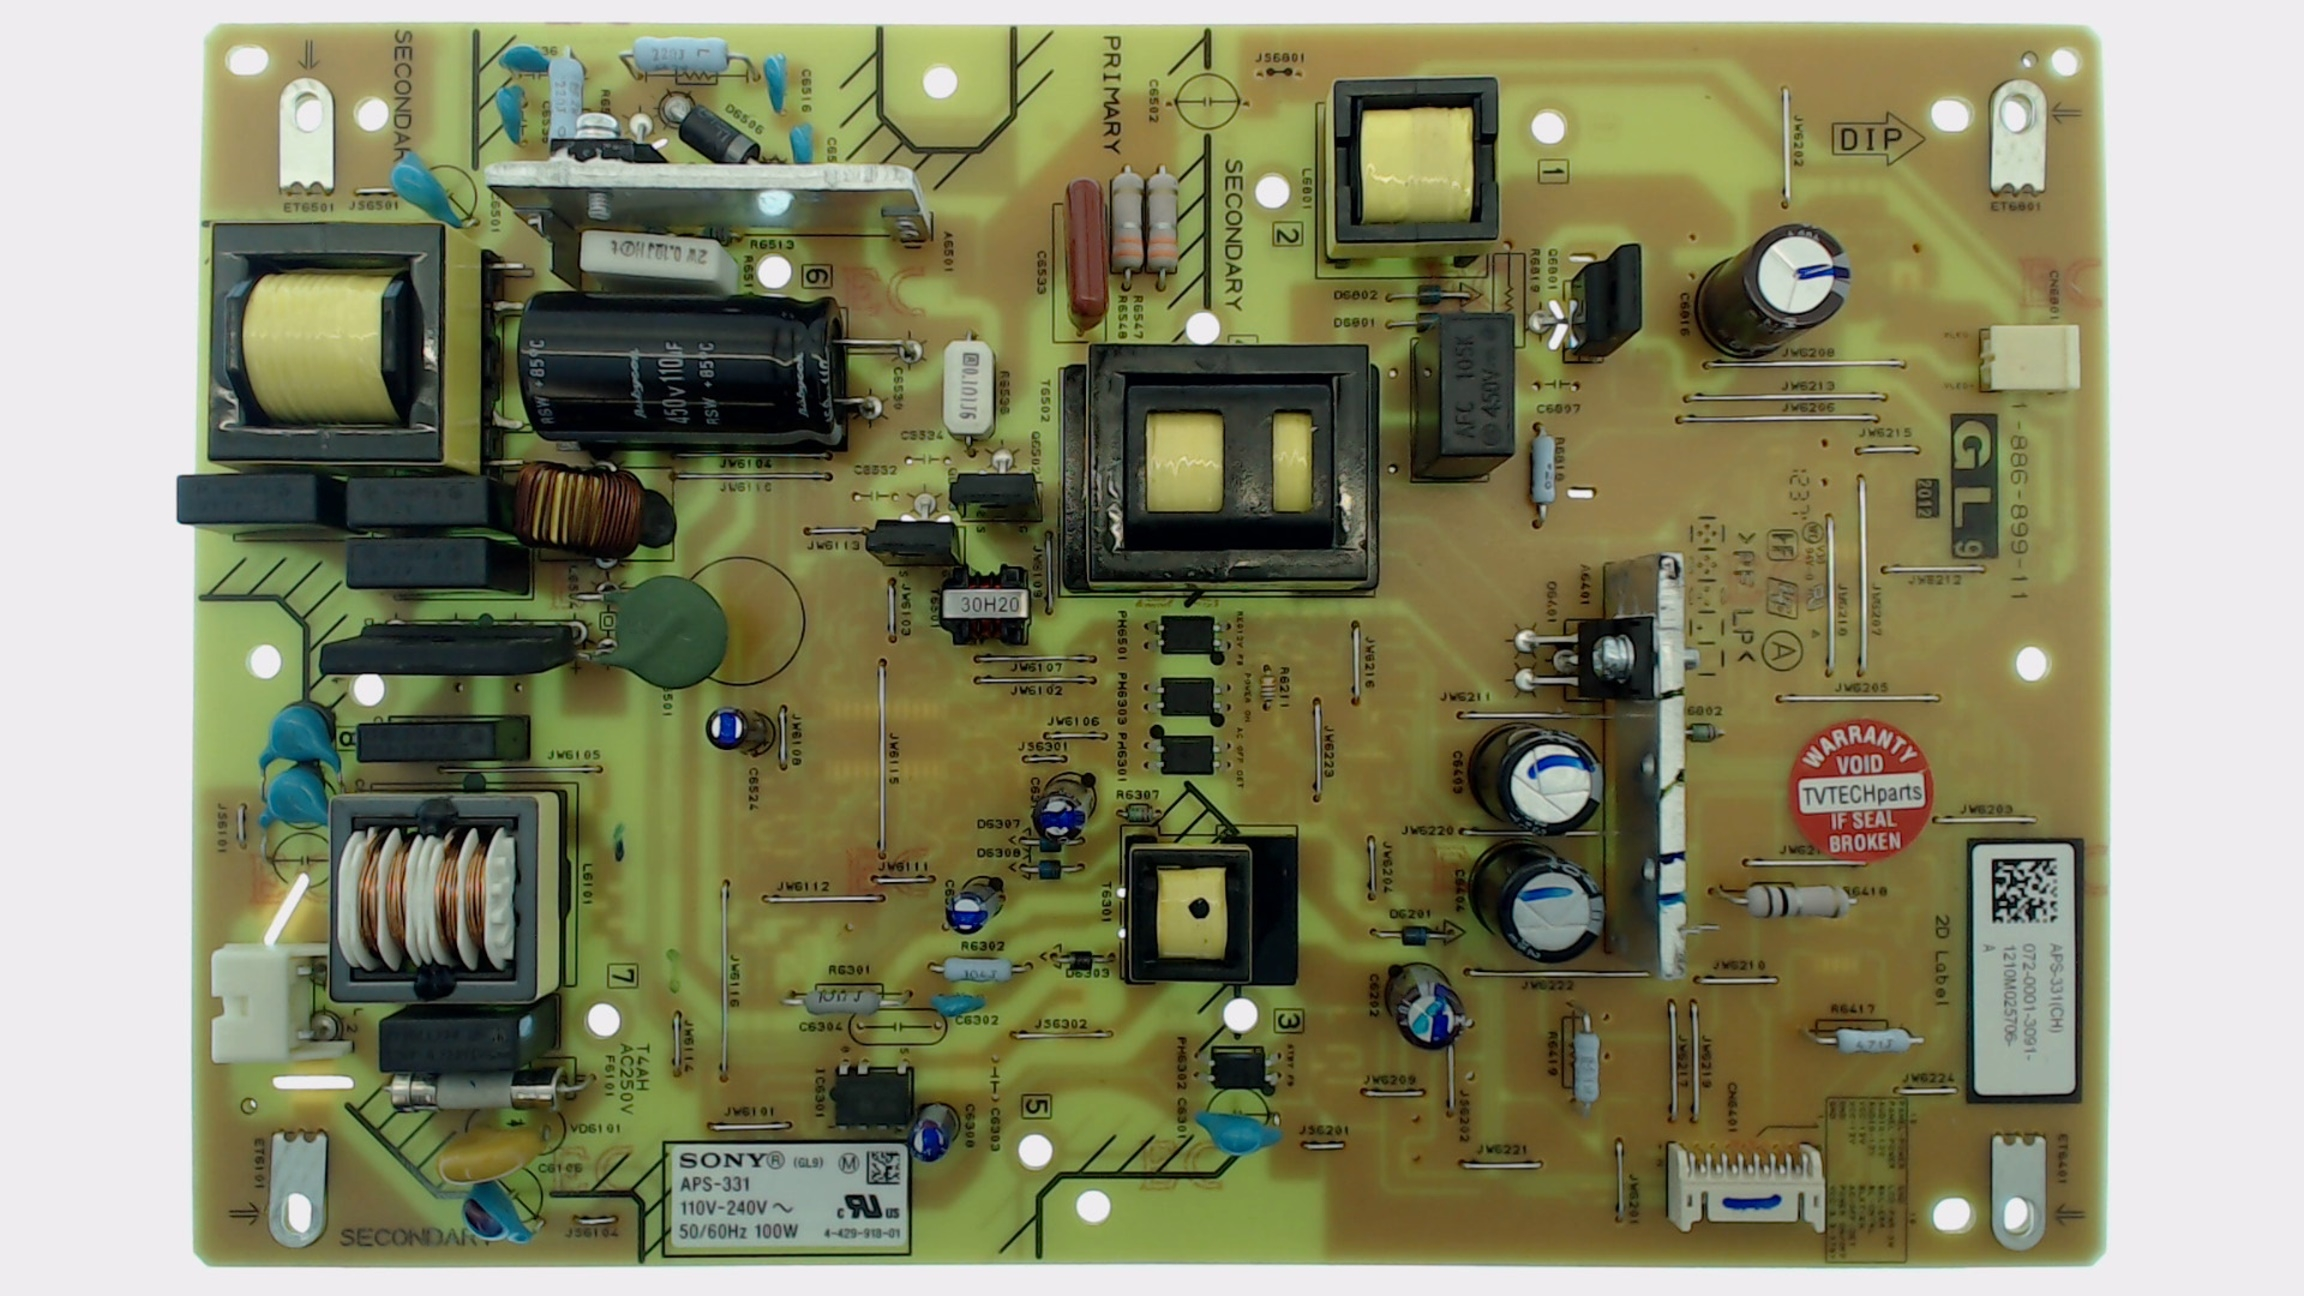 Sony TV Model KDL-32EX340 Power Supply Board Part Number 1-895-254-11